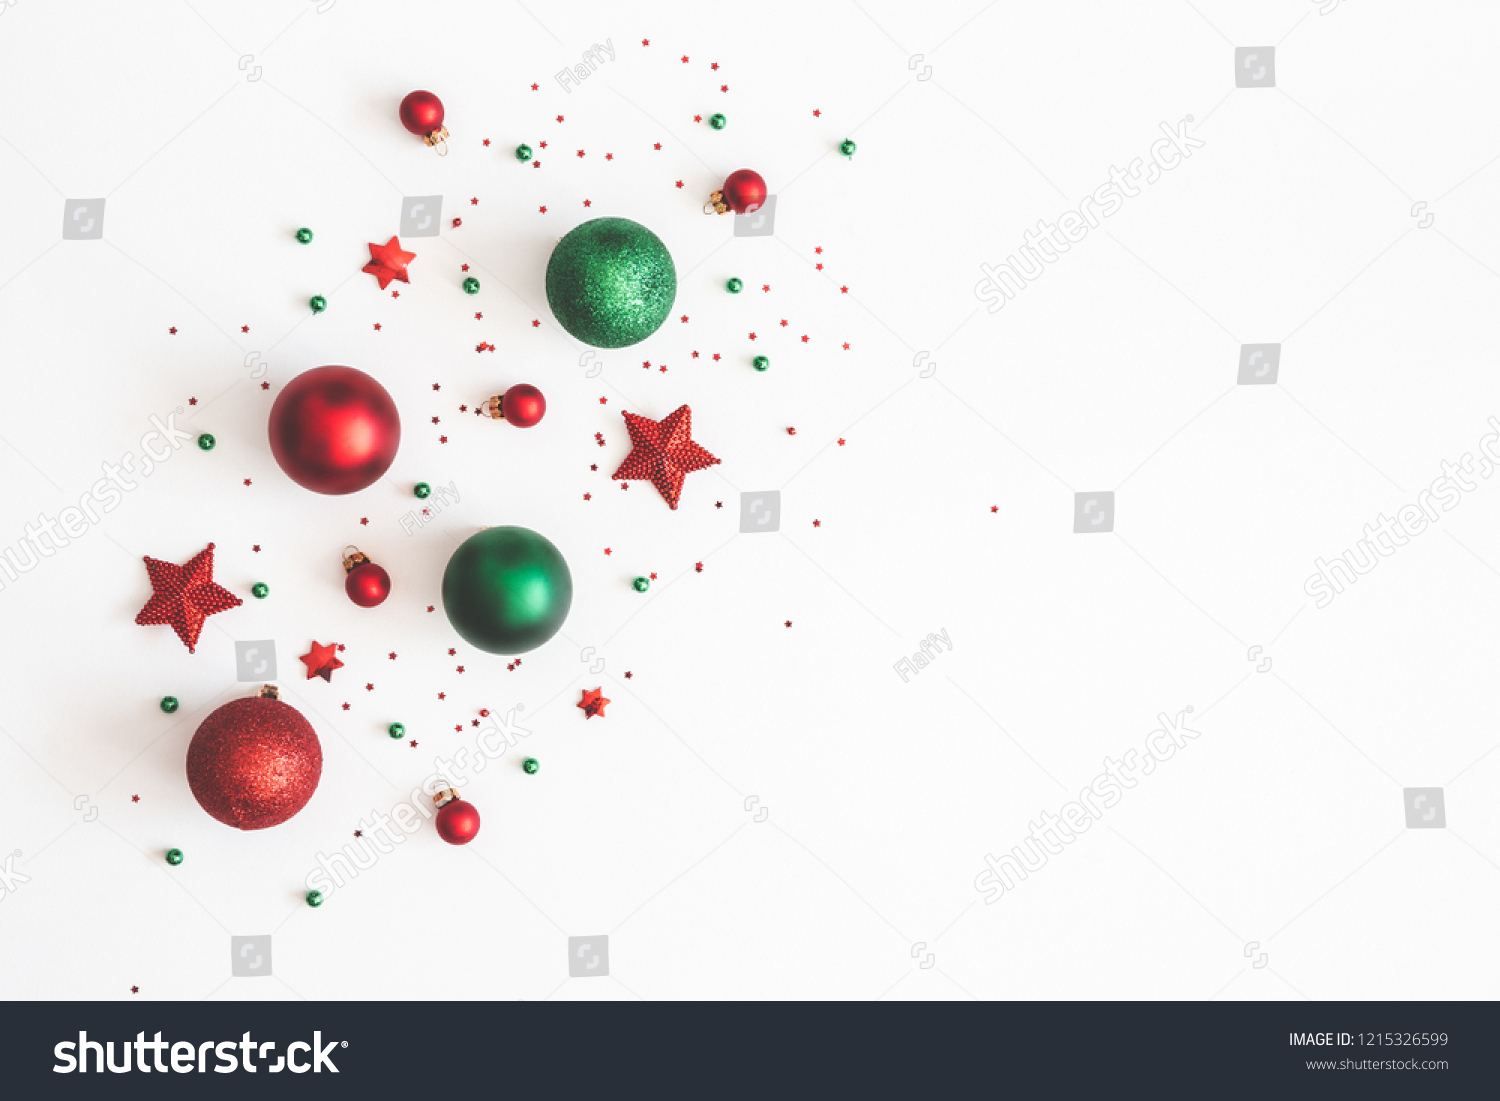 Christmas composition. Christmas red and green decorations on white background. Flat lay, top view, copy space #1215326599